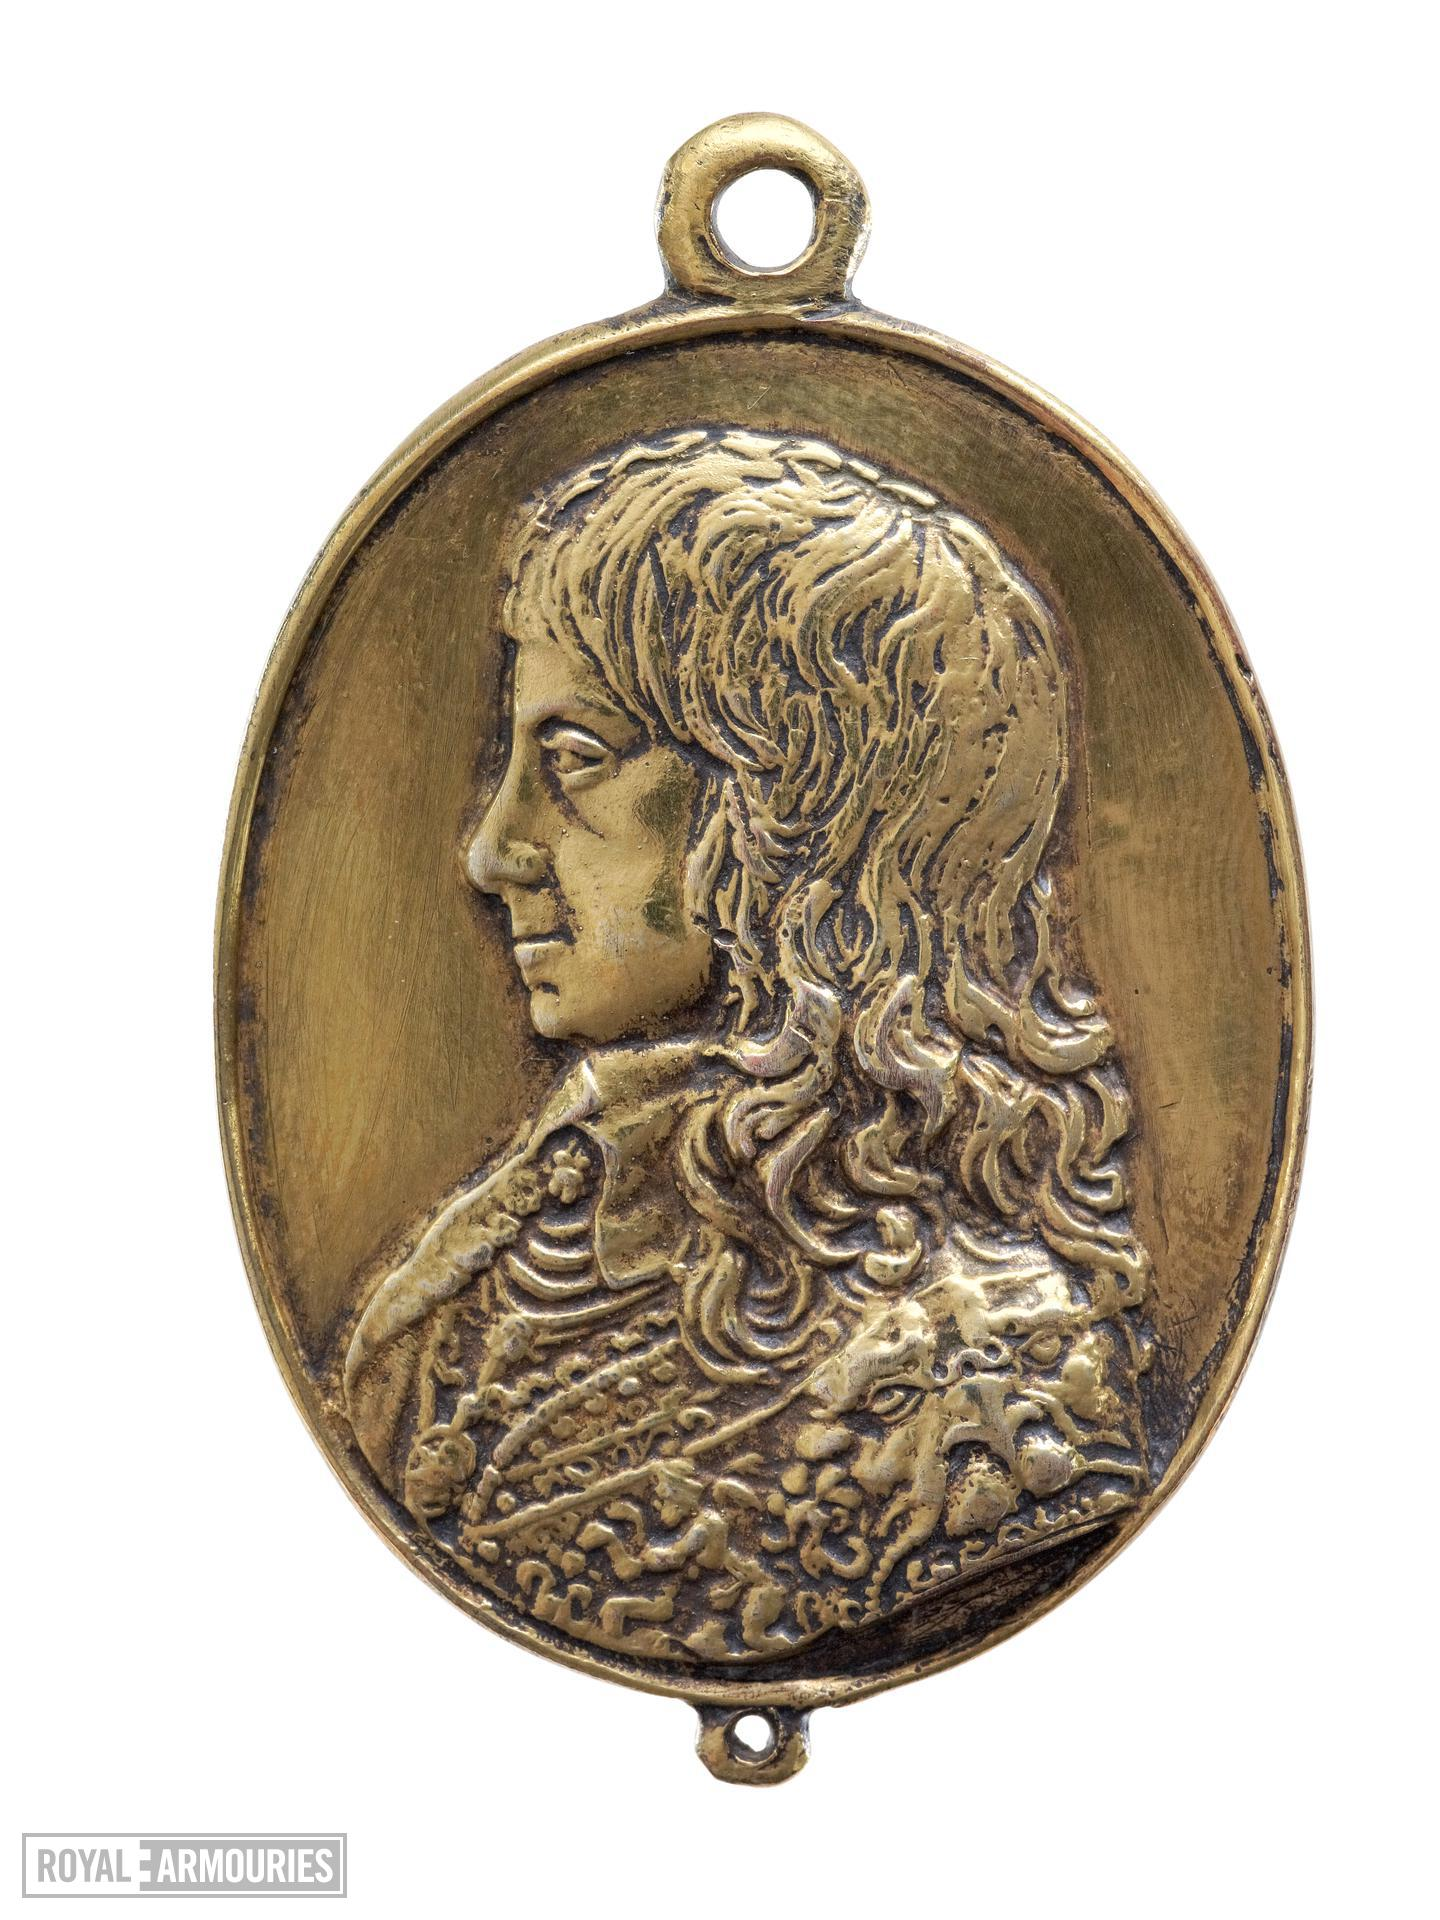 Facsimile of one of a pair of 'Forlorn Hope' medals, showing Charles I wearing the Lion Armour (XVIII.564)